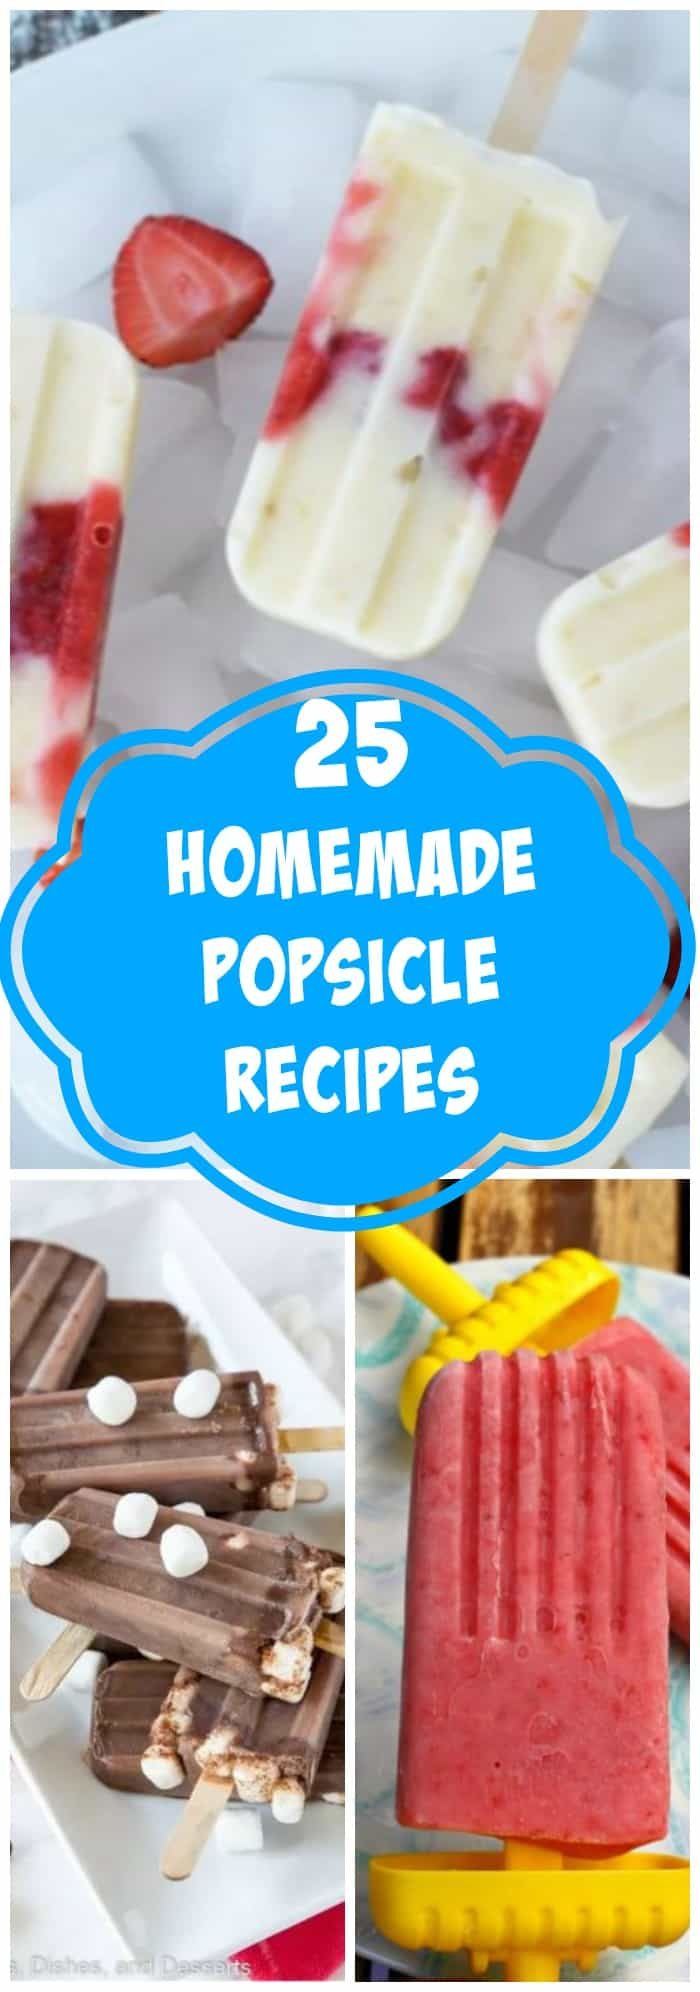 25 Homemade Popsicle Recipes